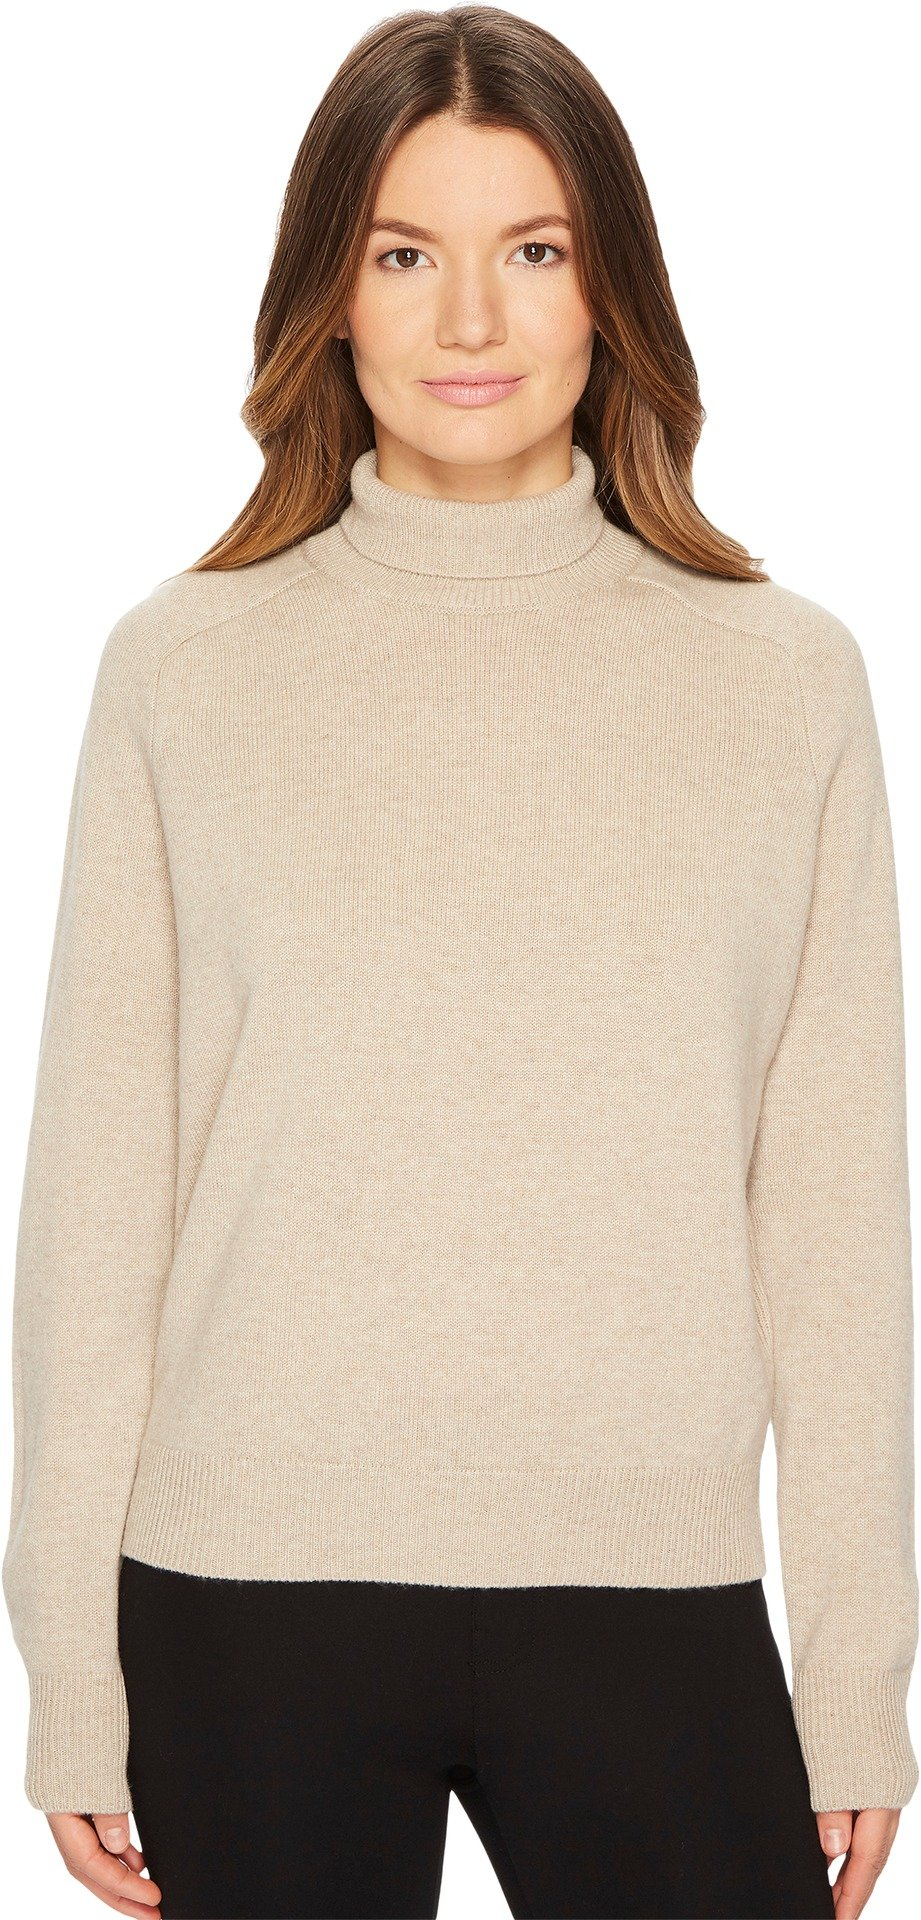 Vince Women's Saddle Turtleneck Tan/Khaki Medium by Vince